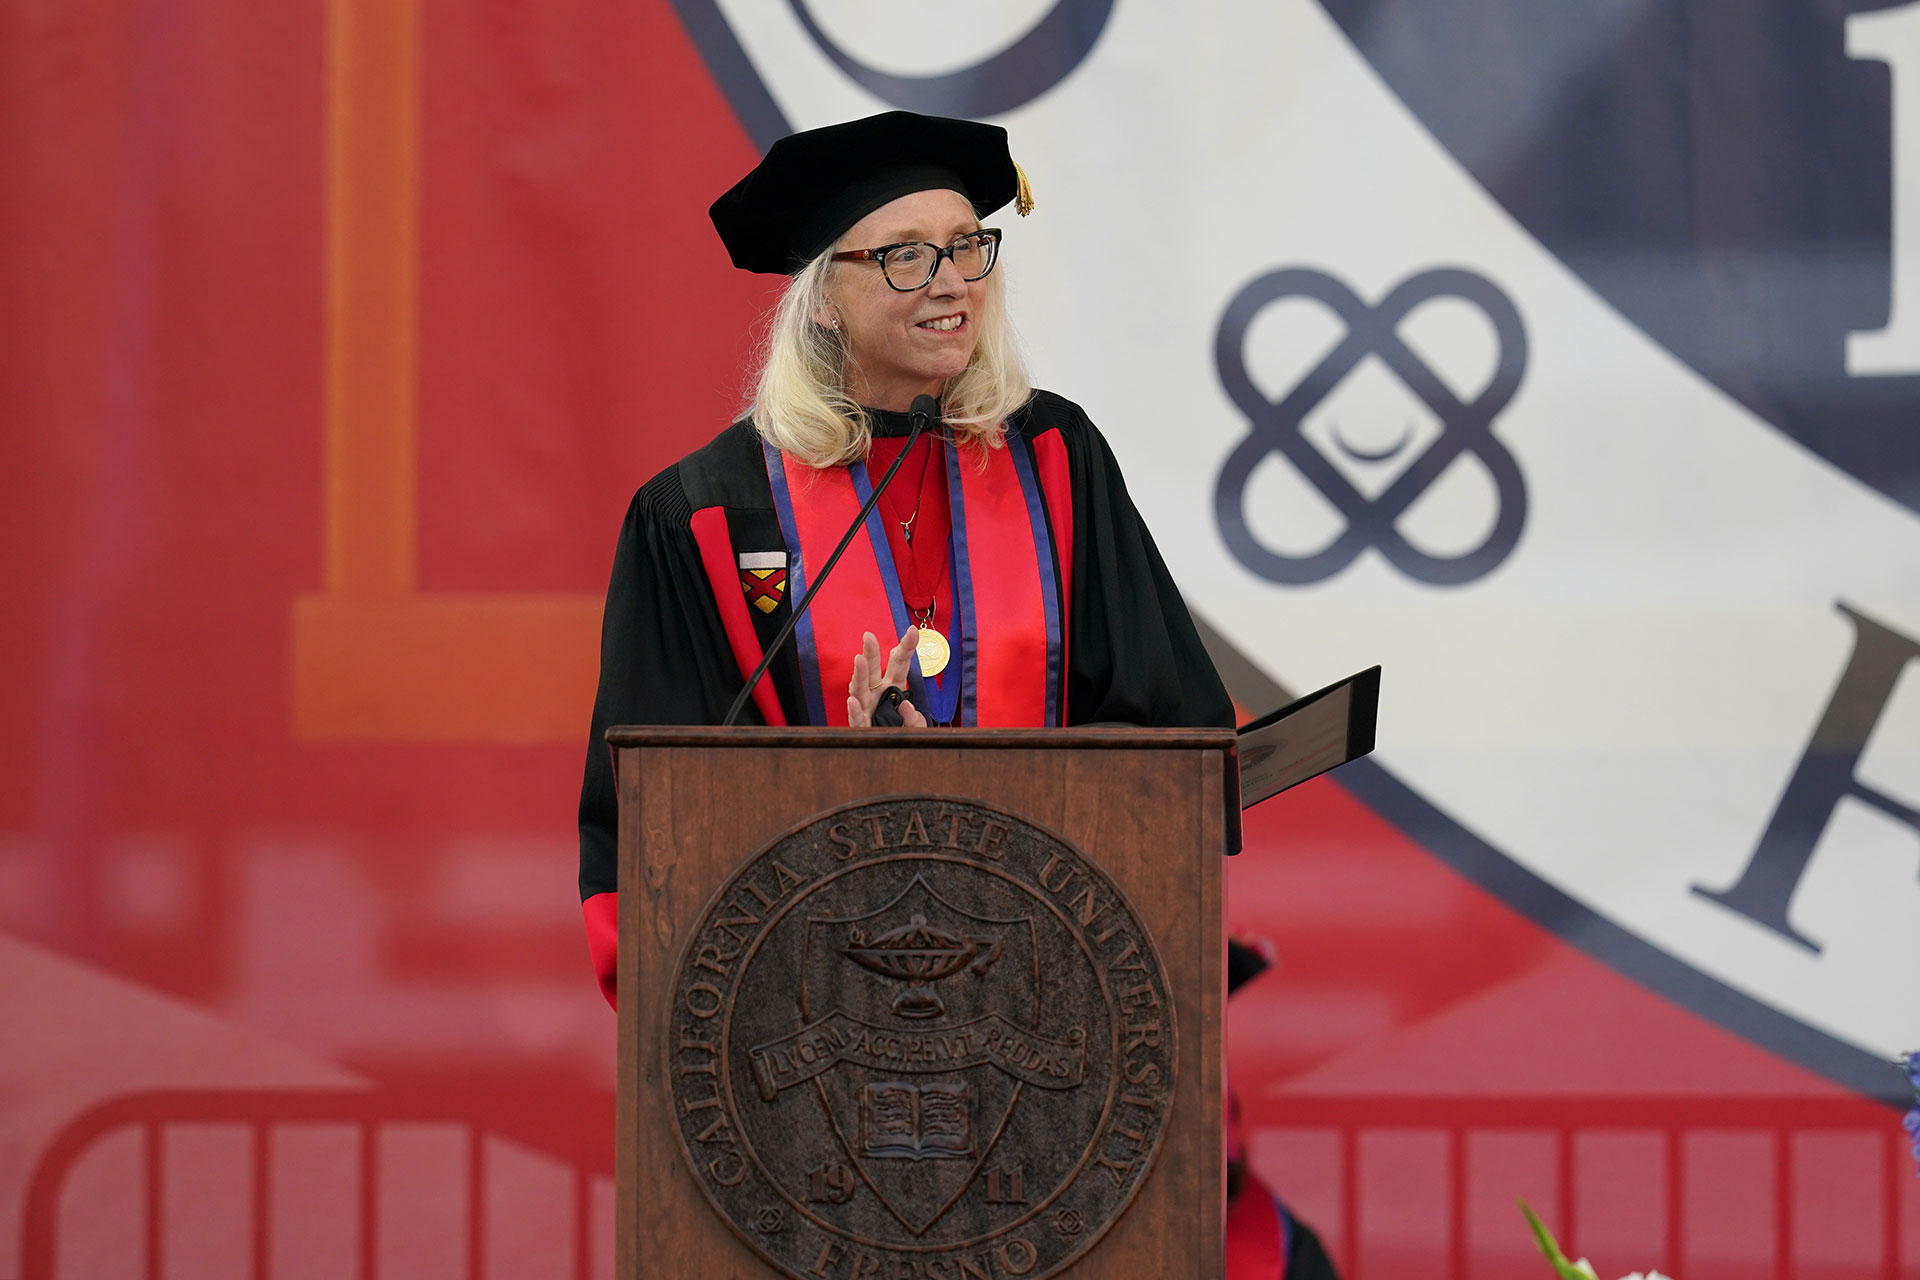 Dr. Honora Chapman, Dean of the College of Arts and Humanities. Photo by Cary Edmondson